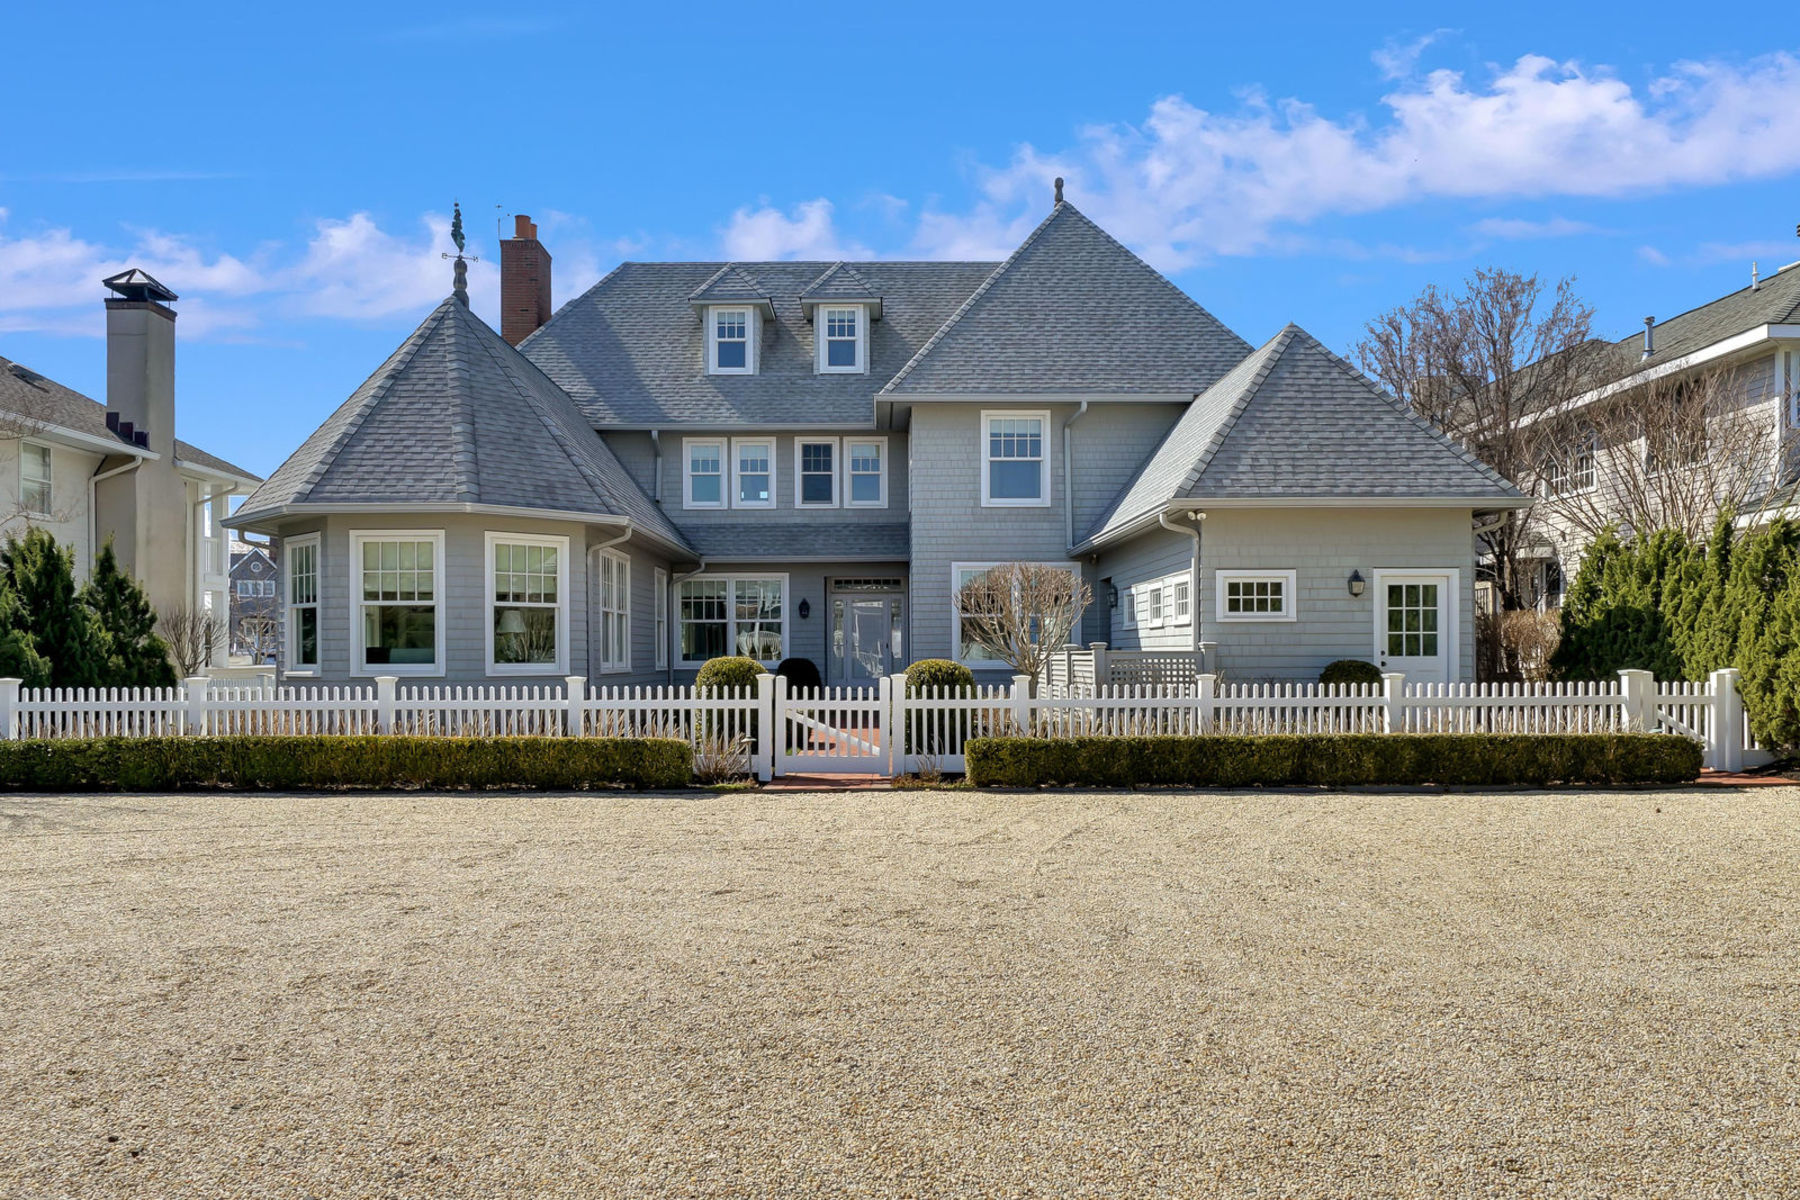 Moradia para Venda às Exquisitely Appointed Lagoon Front Home Offers Shore Living At It's Finest 950 Barnegat Lane, Mantoloking, Nova Jersey 08738 Estados Unidos